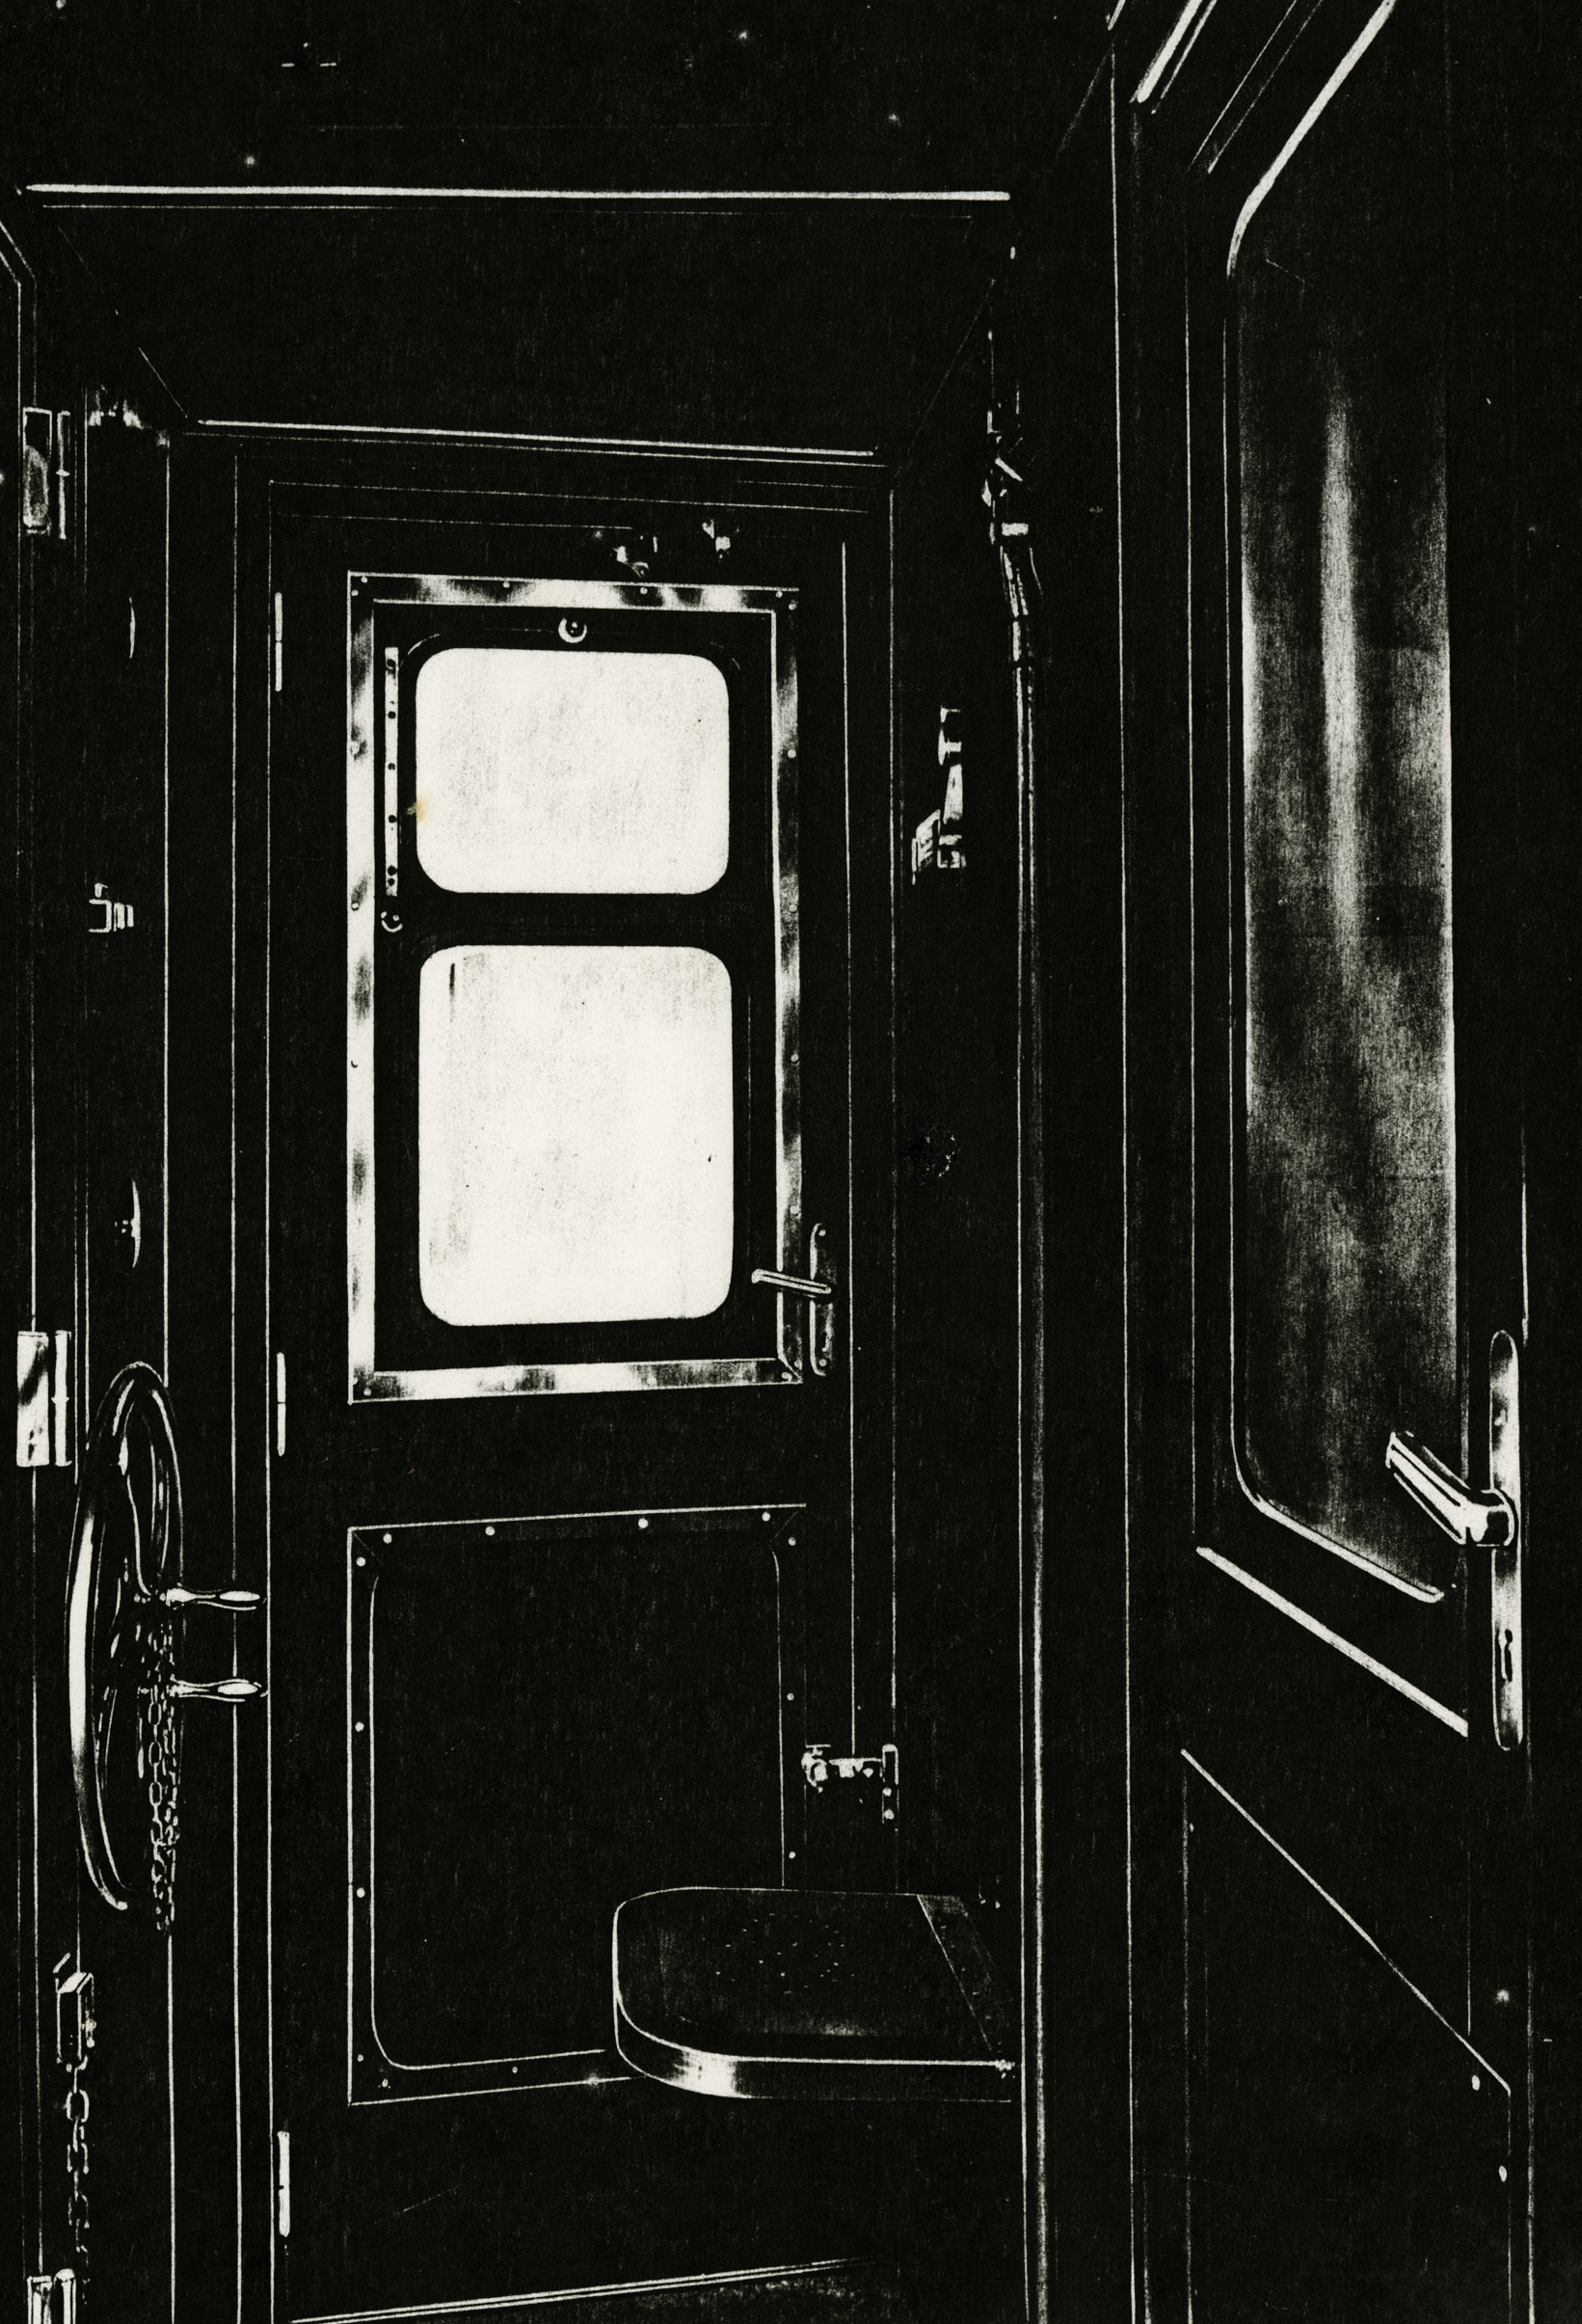 Pati Hill,  How something can have been at one time and in one place and nowhere else ever again,  1979 (detail), 10 black and white photocopies, Signed, Prints ranging from 5 ½ x 8 to 8 ½ x 6 ½